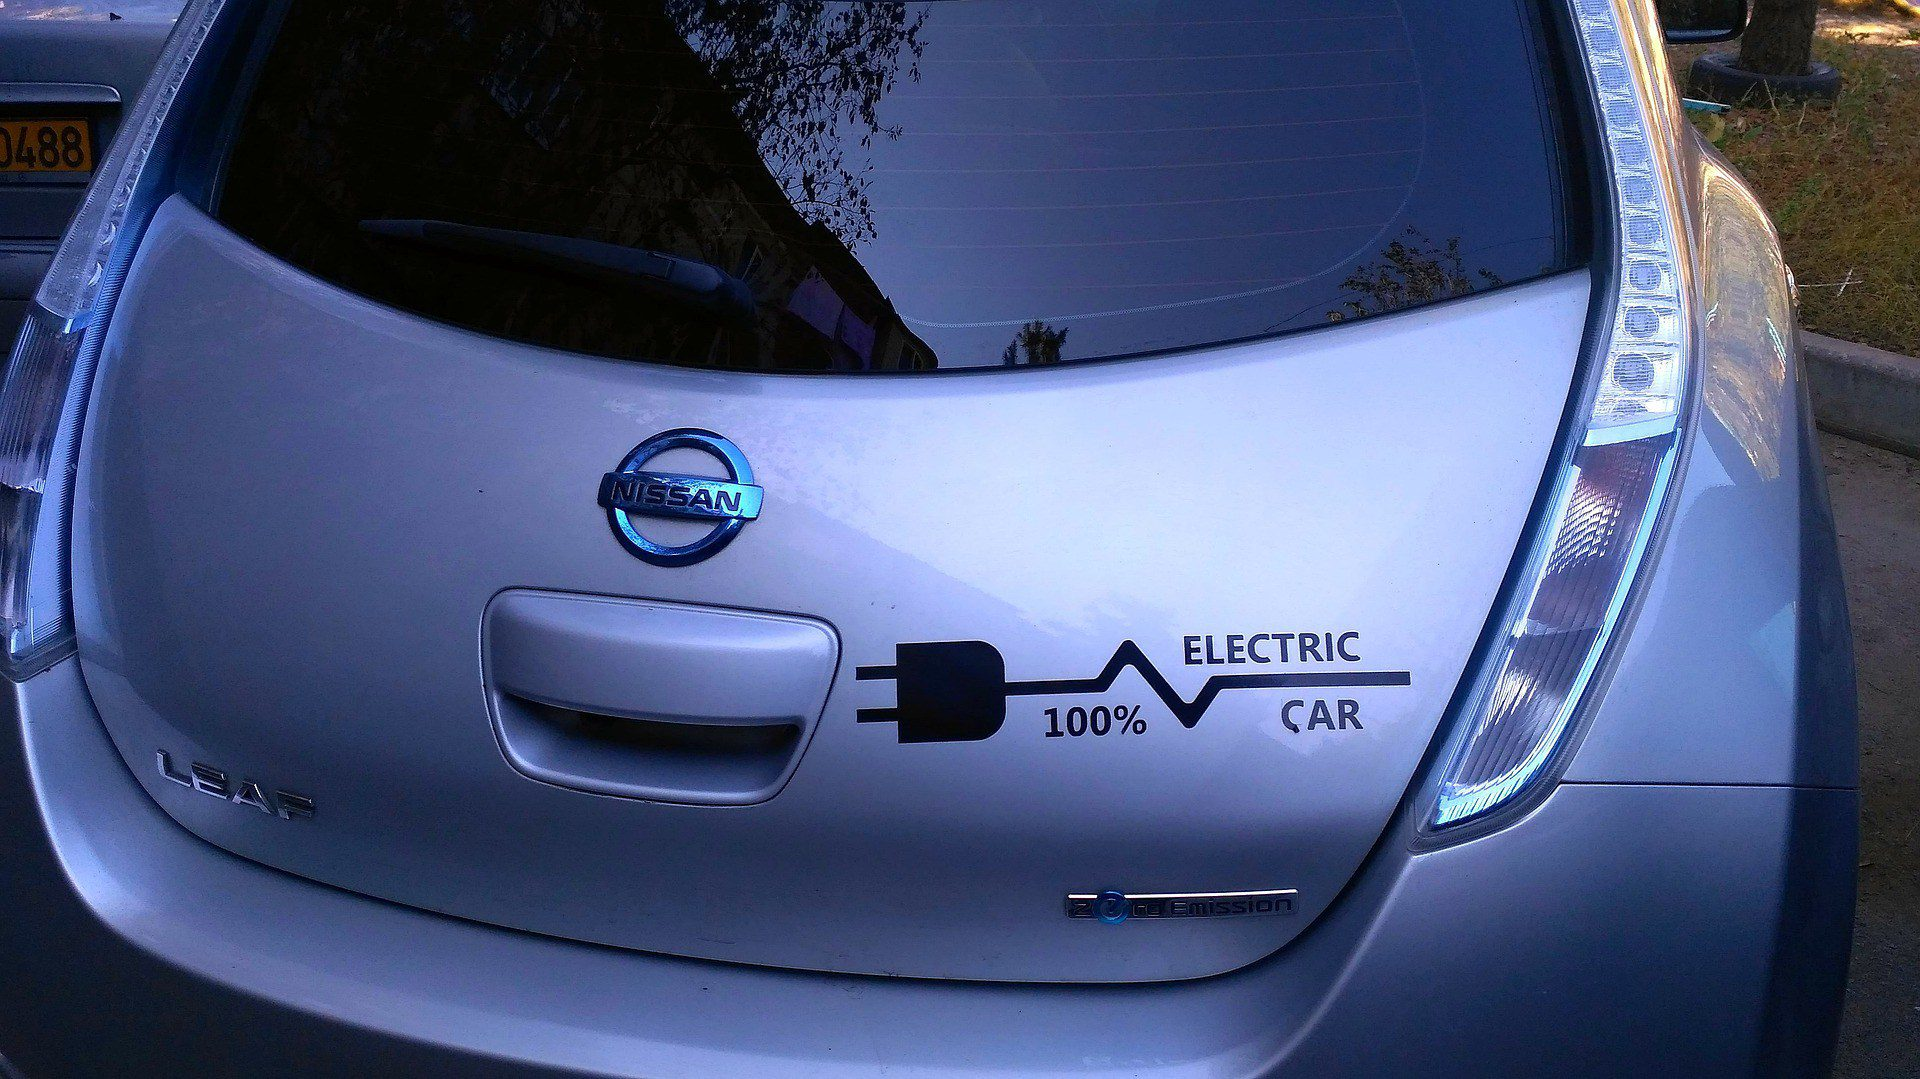 electric car nissan leaf